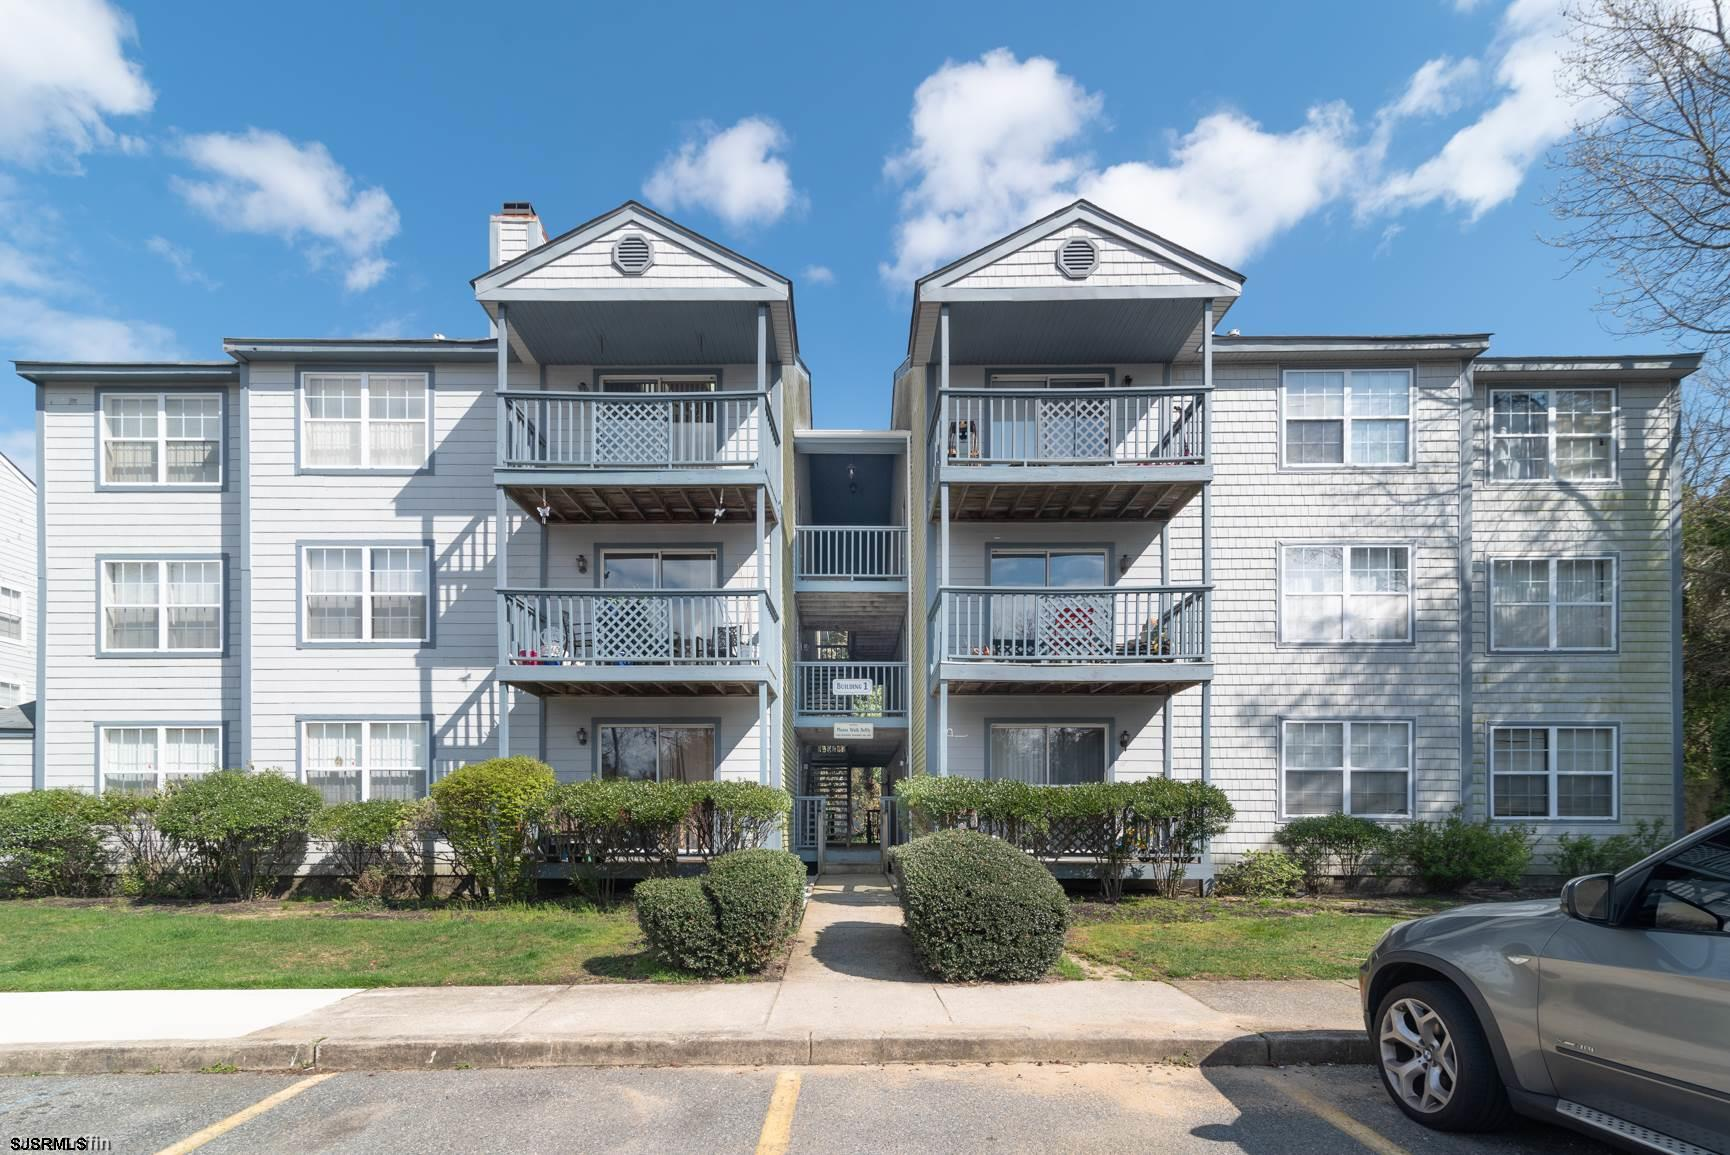 Come on in to this 2 bedroom, 2 bathroom second floor condo in Oyster Bay. Upon entry you will be gr